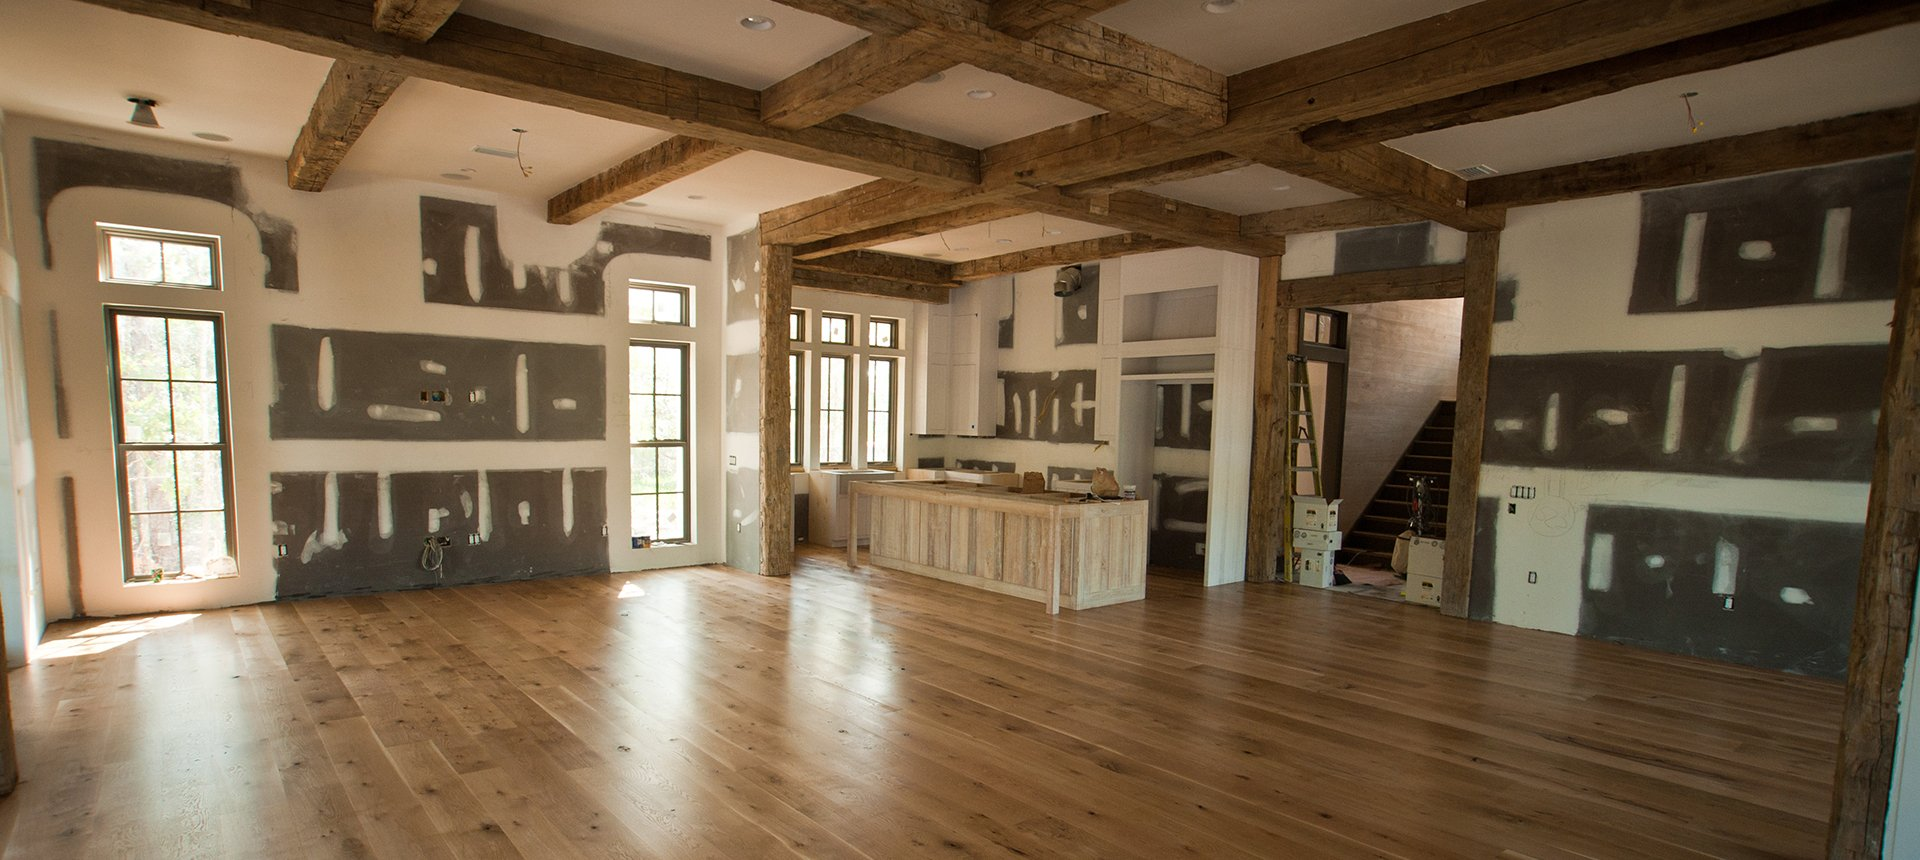 choose from a variety of reclaimed beams and flooring